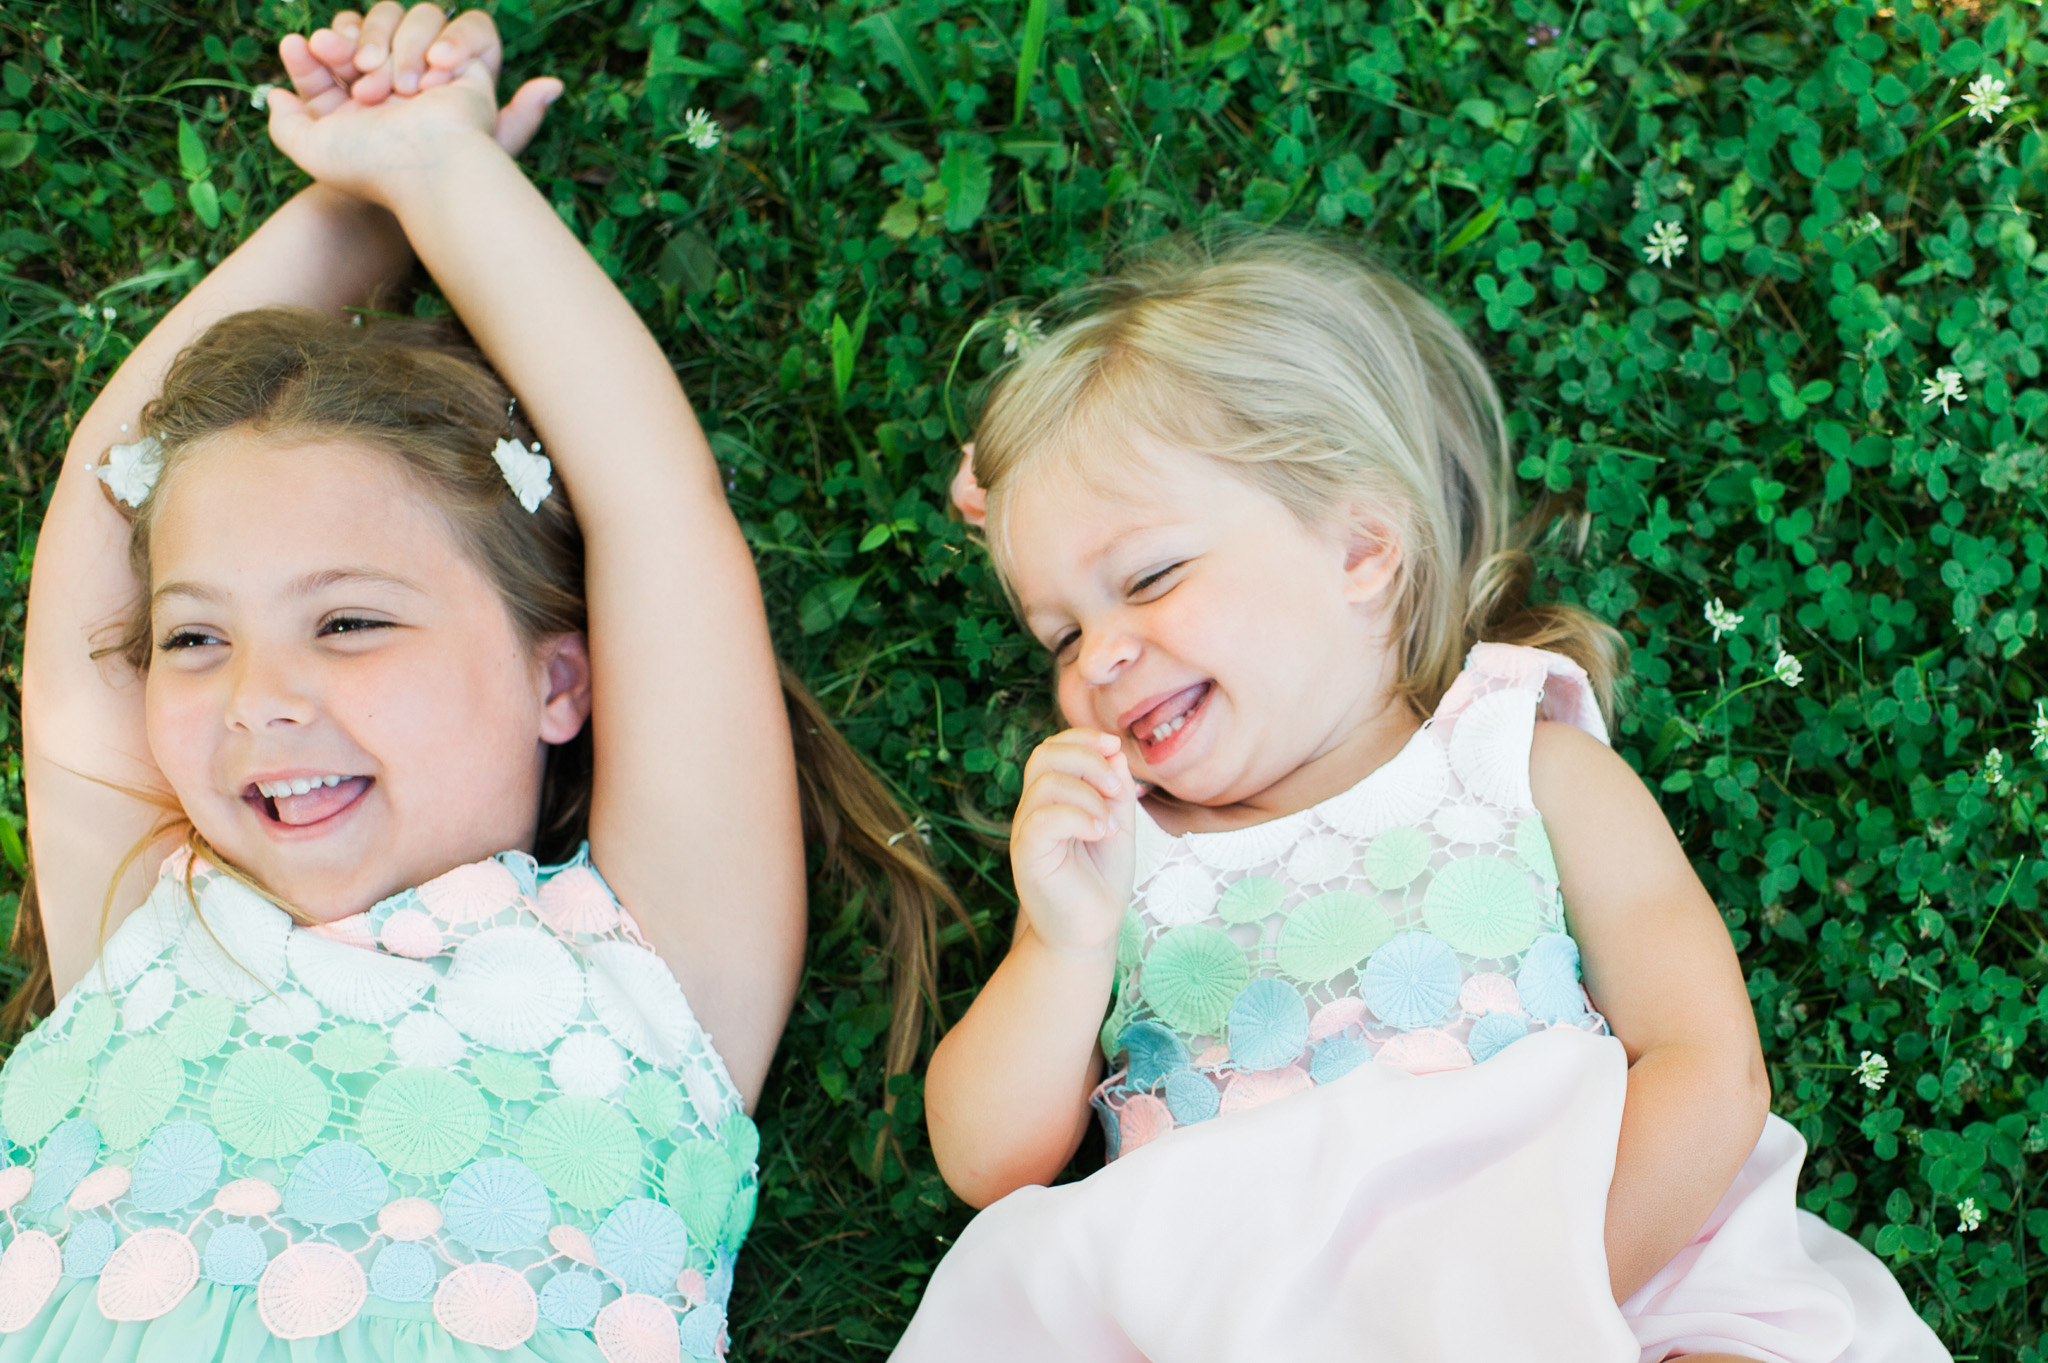 portrait of sisters giggling by Erin Borzellino. Award winning portrait photographer